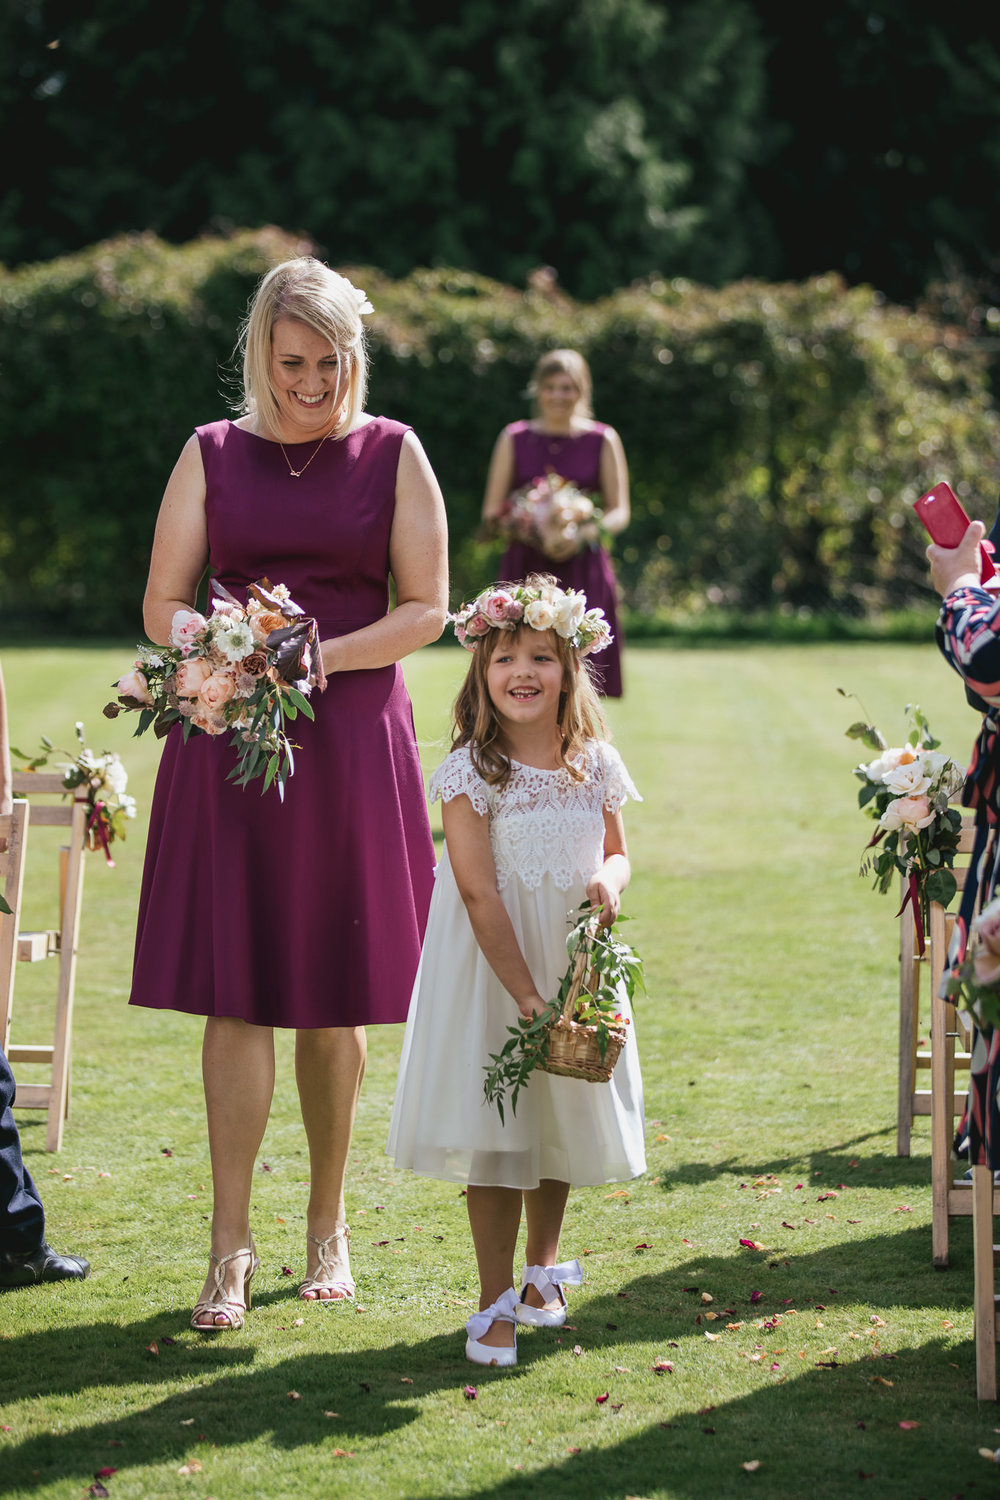 Outdoor wedding at Pennard House, Somerset_bridesmaids walk down the aisle